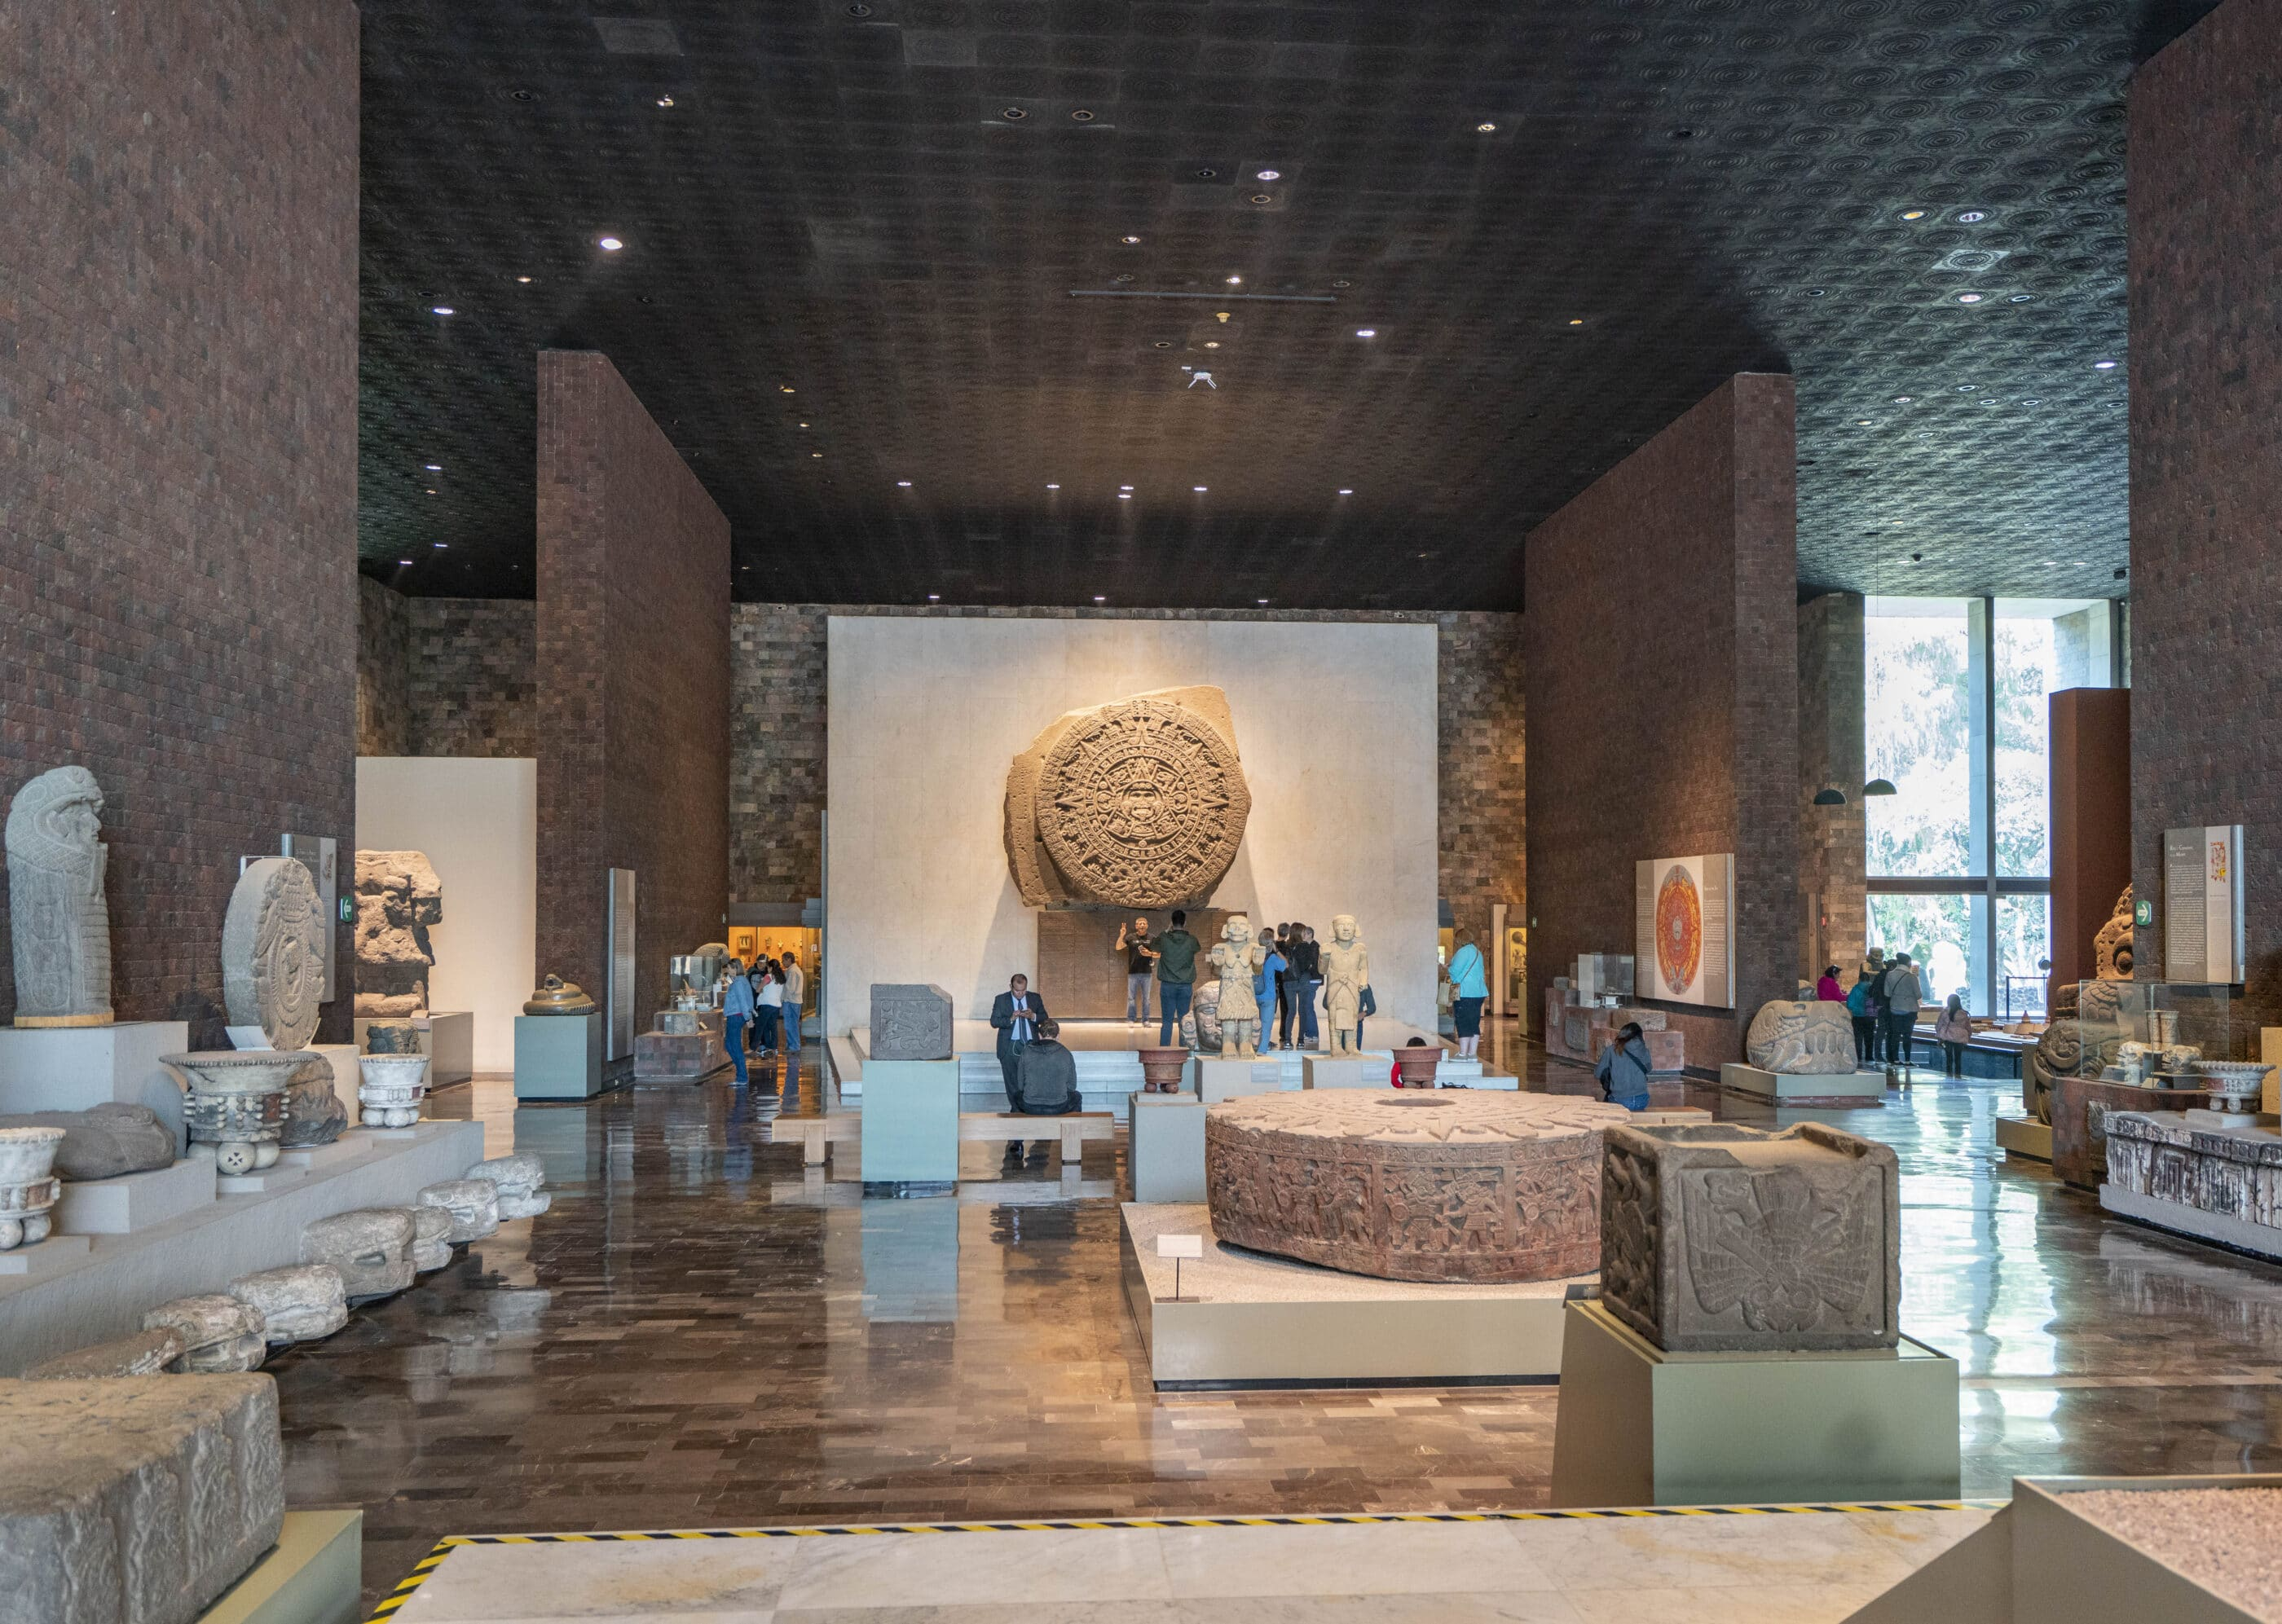 What to see at the National Museum of Anthropology in Mexico City